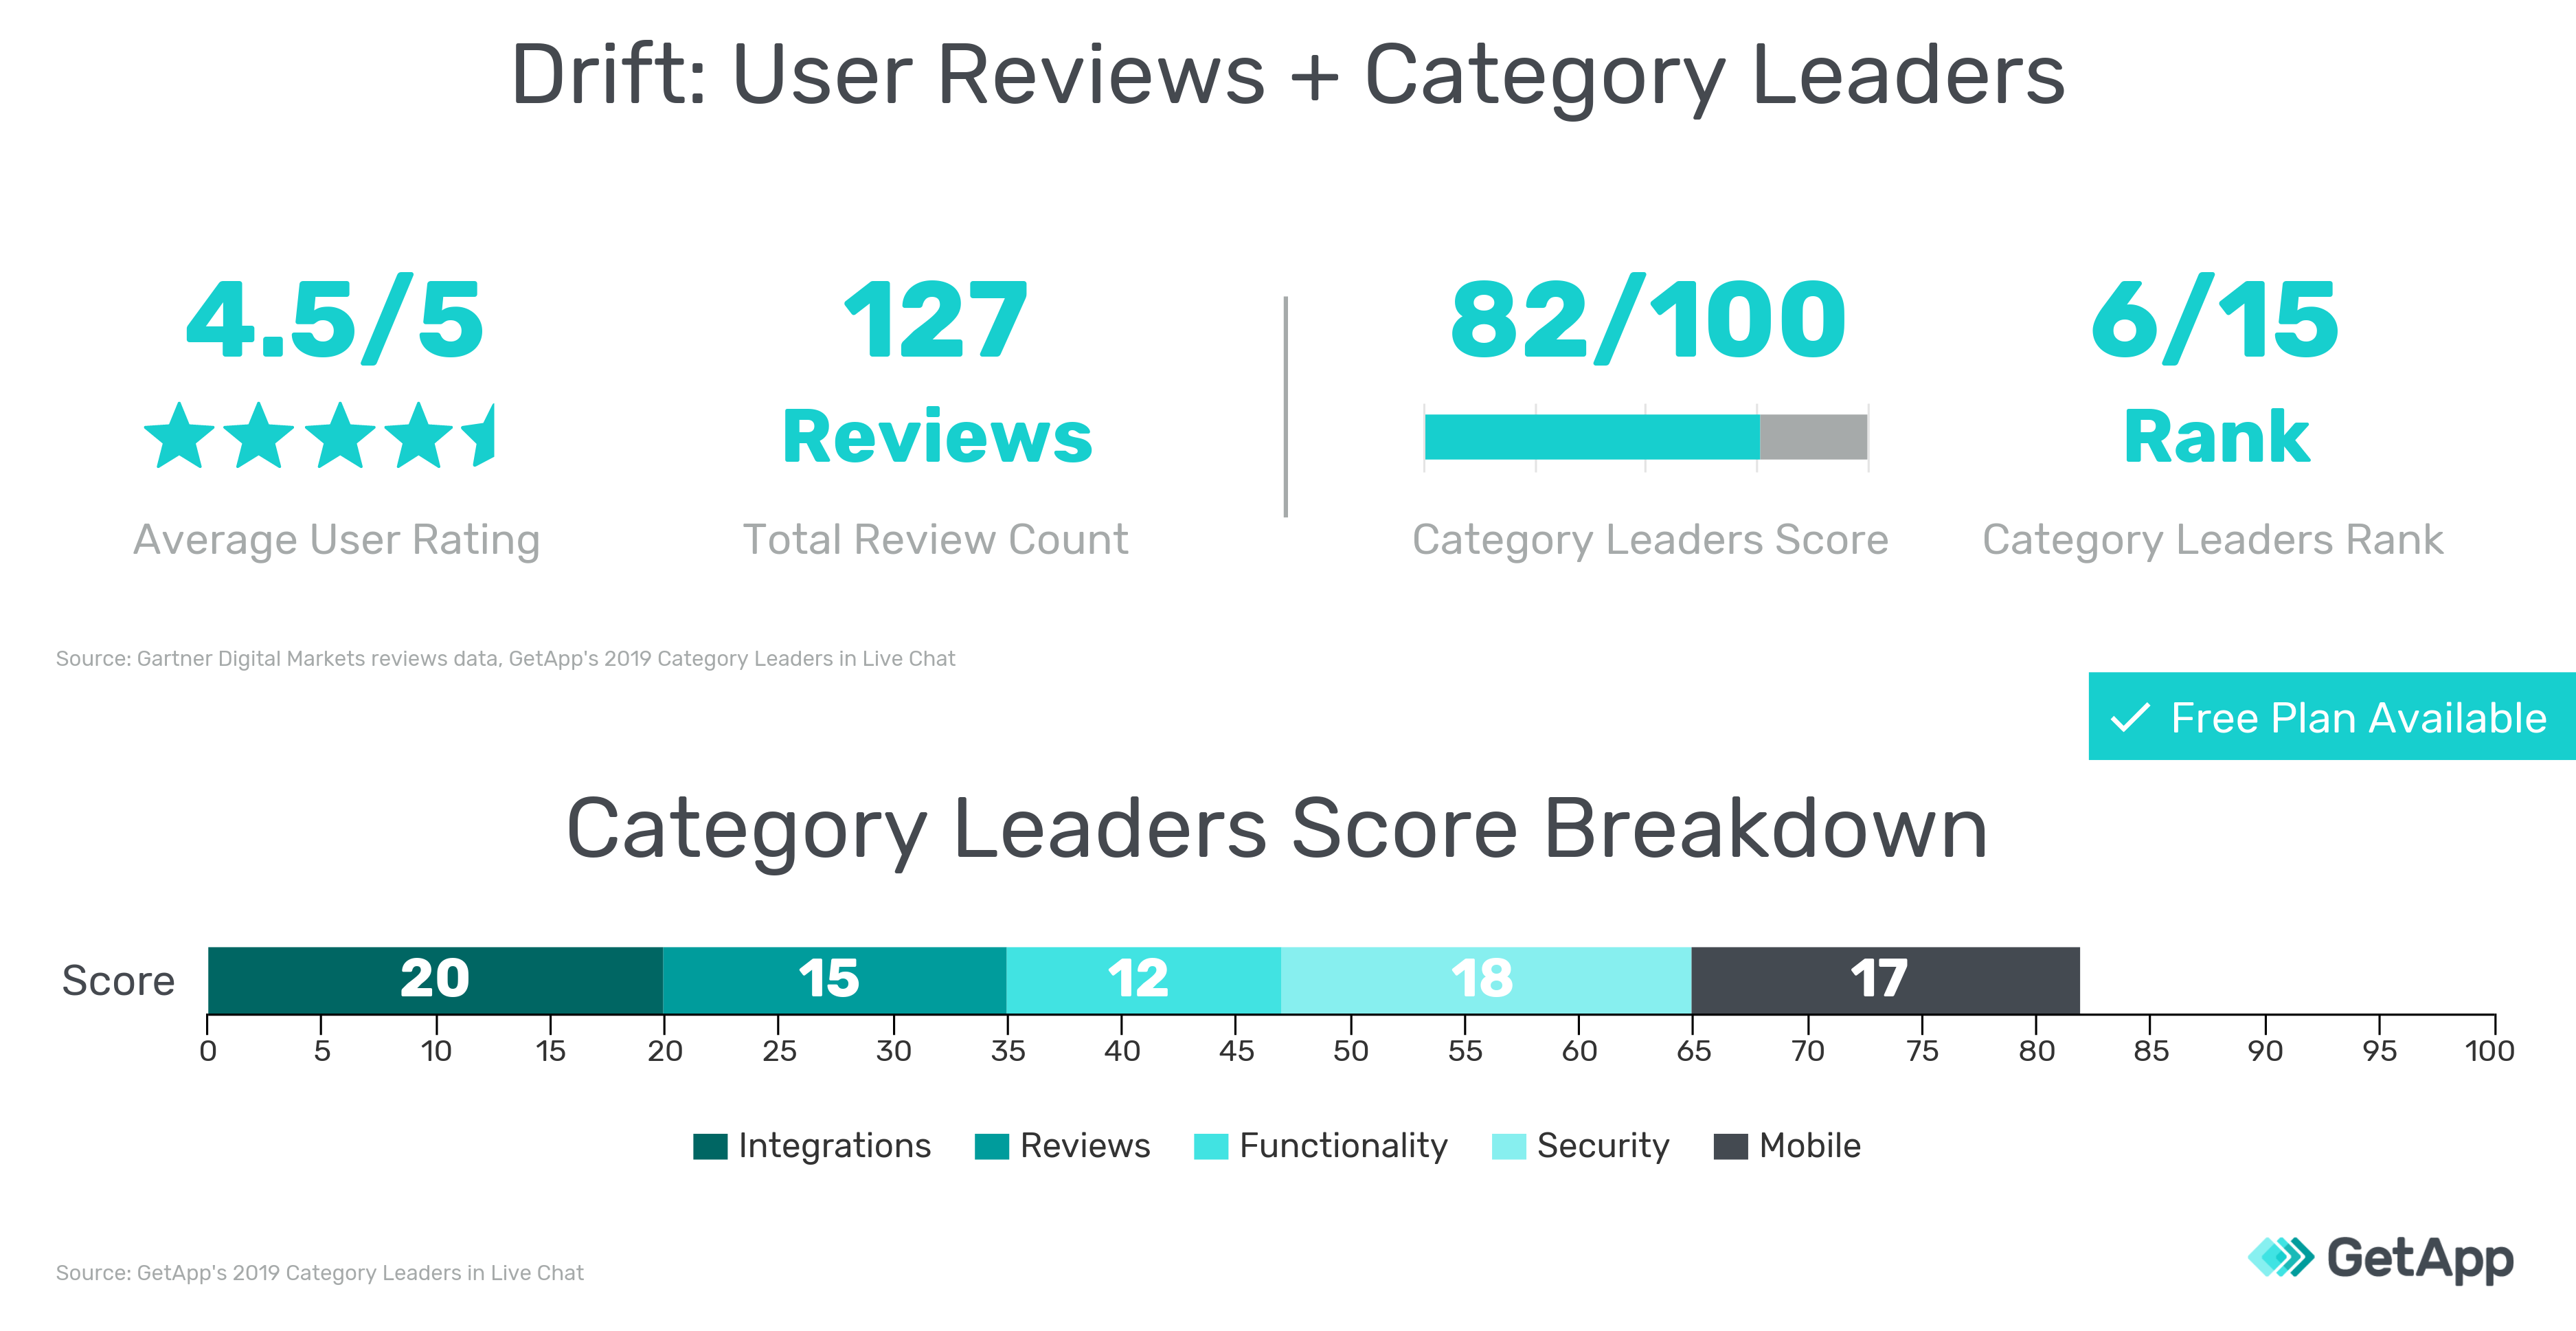 User reviews information and 2019 Category Leaders scores for Drift graphic